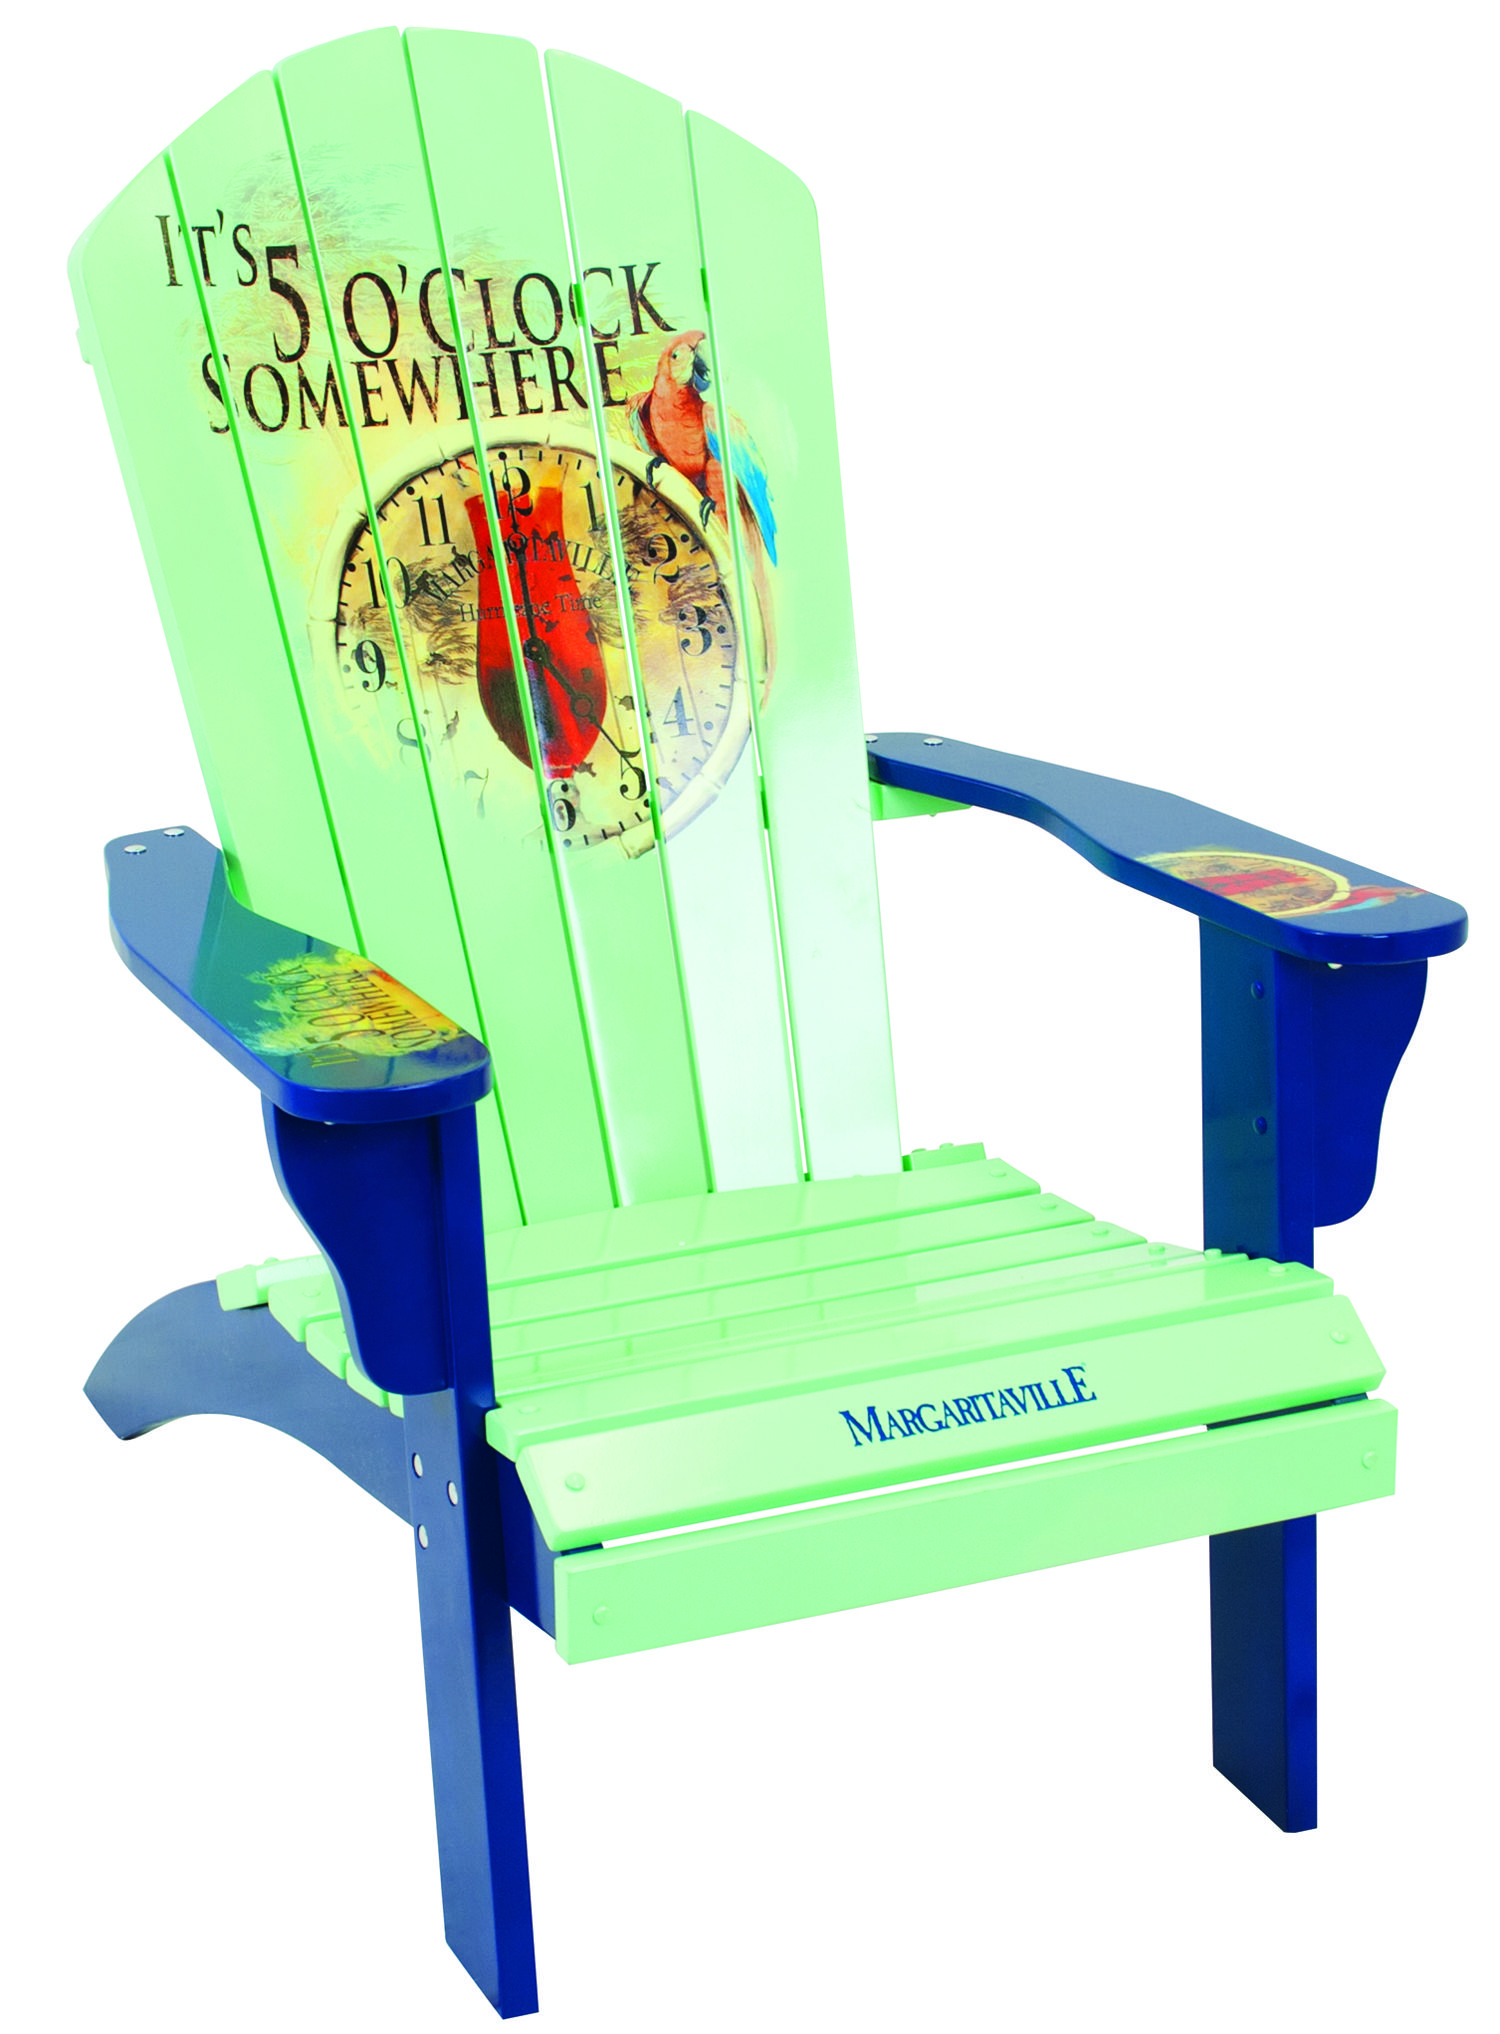 Margaritaville Adirondack Chairs Take A Seat It 39s 5 O 39clock Somewhere Riobrands